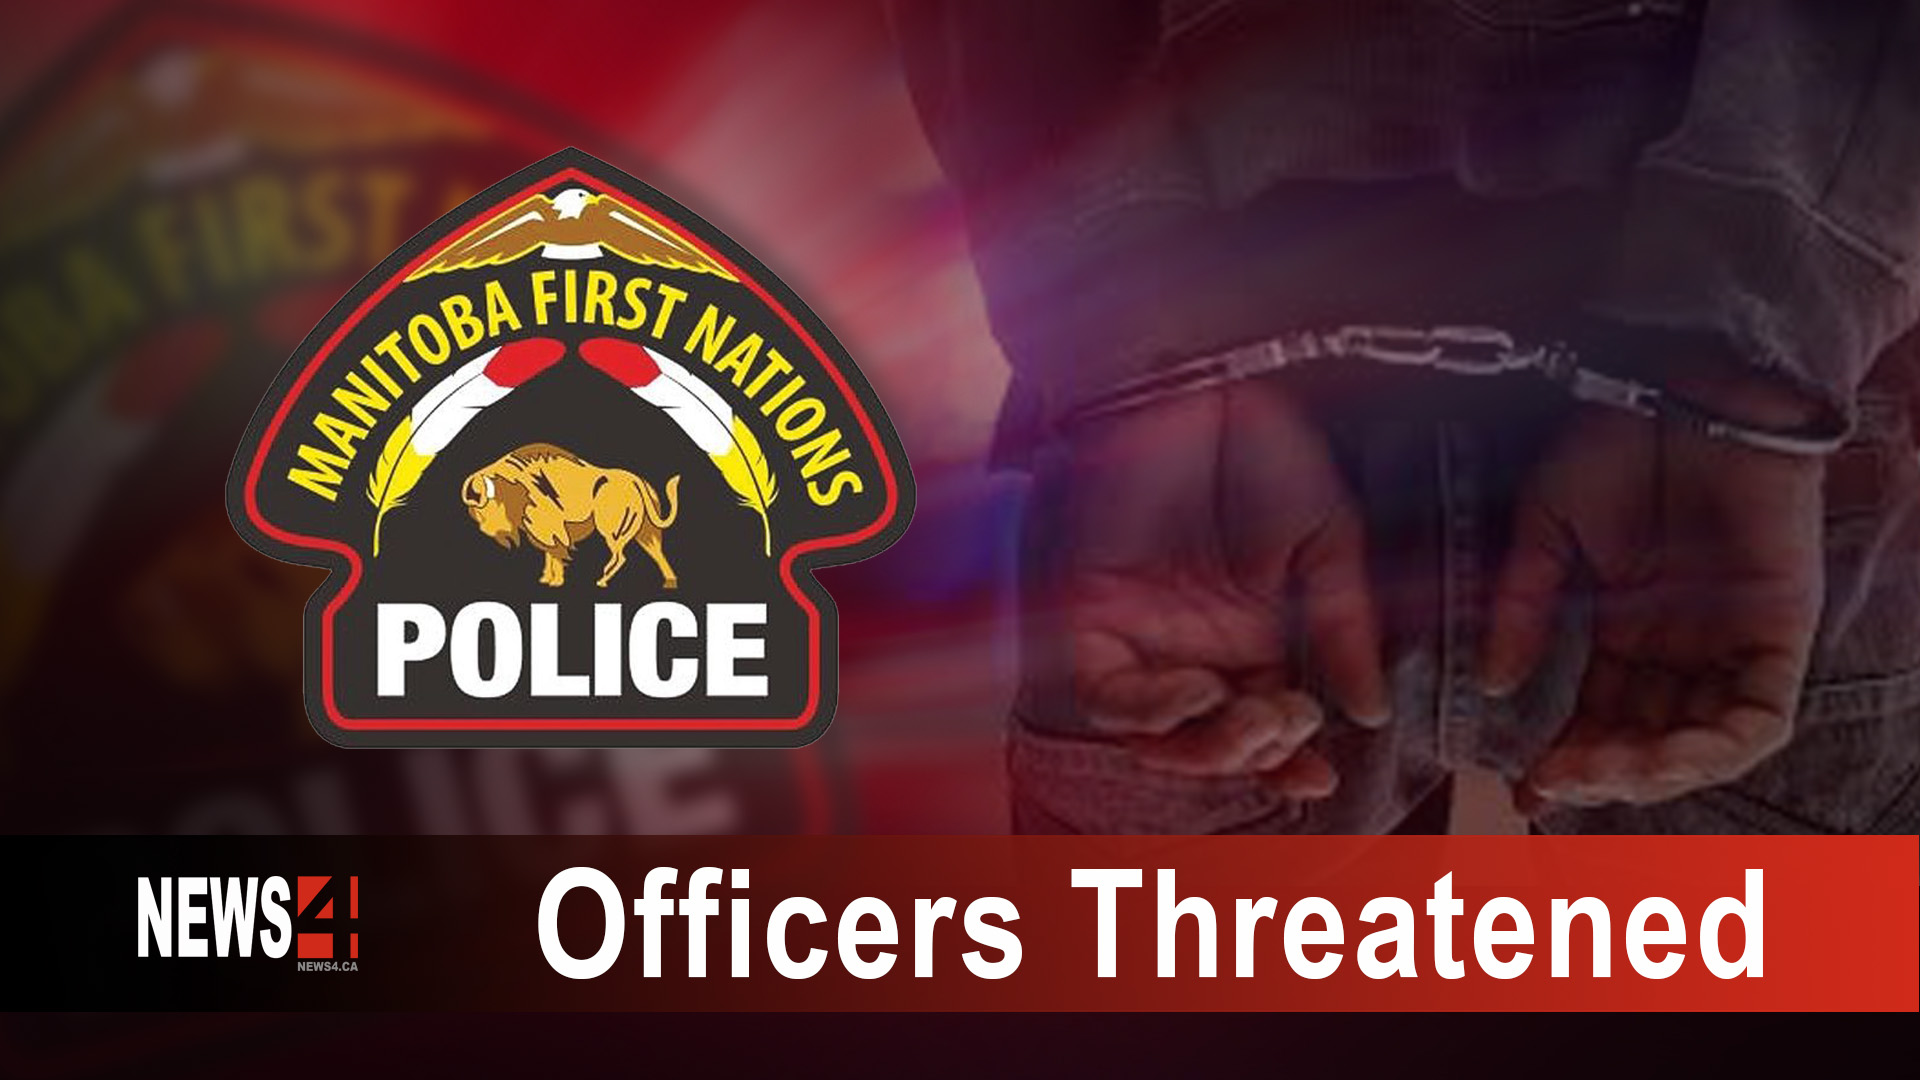 Officers Threatened